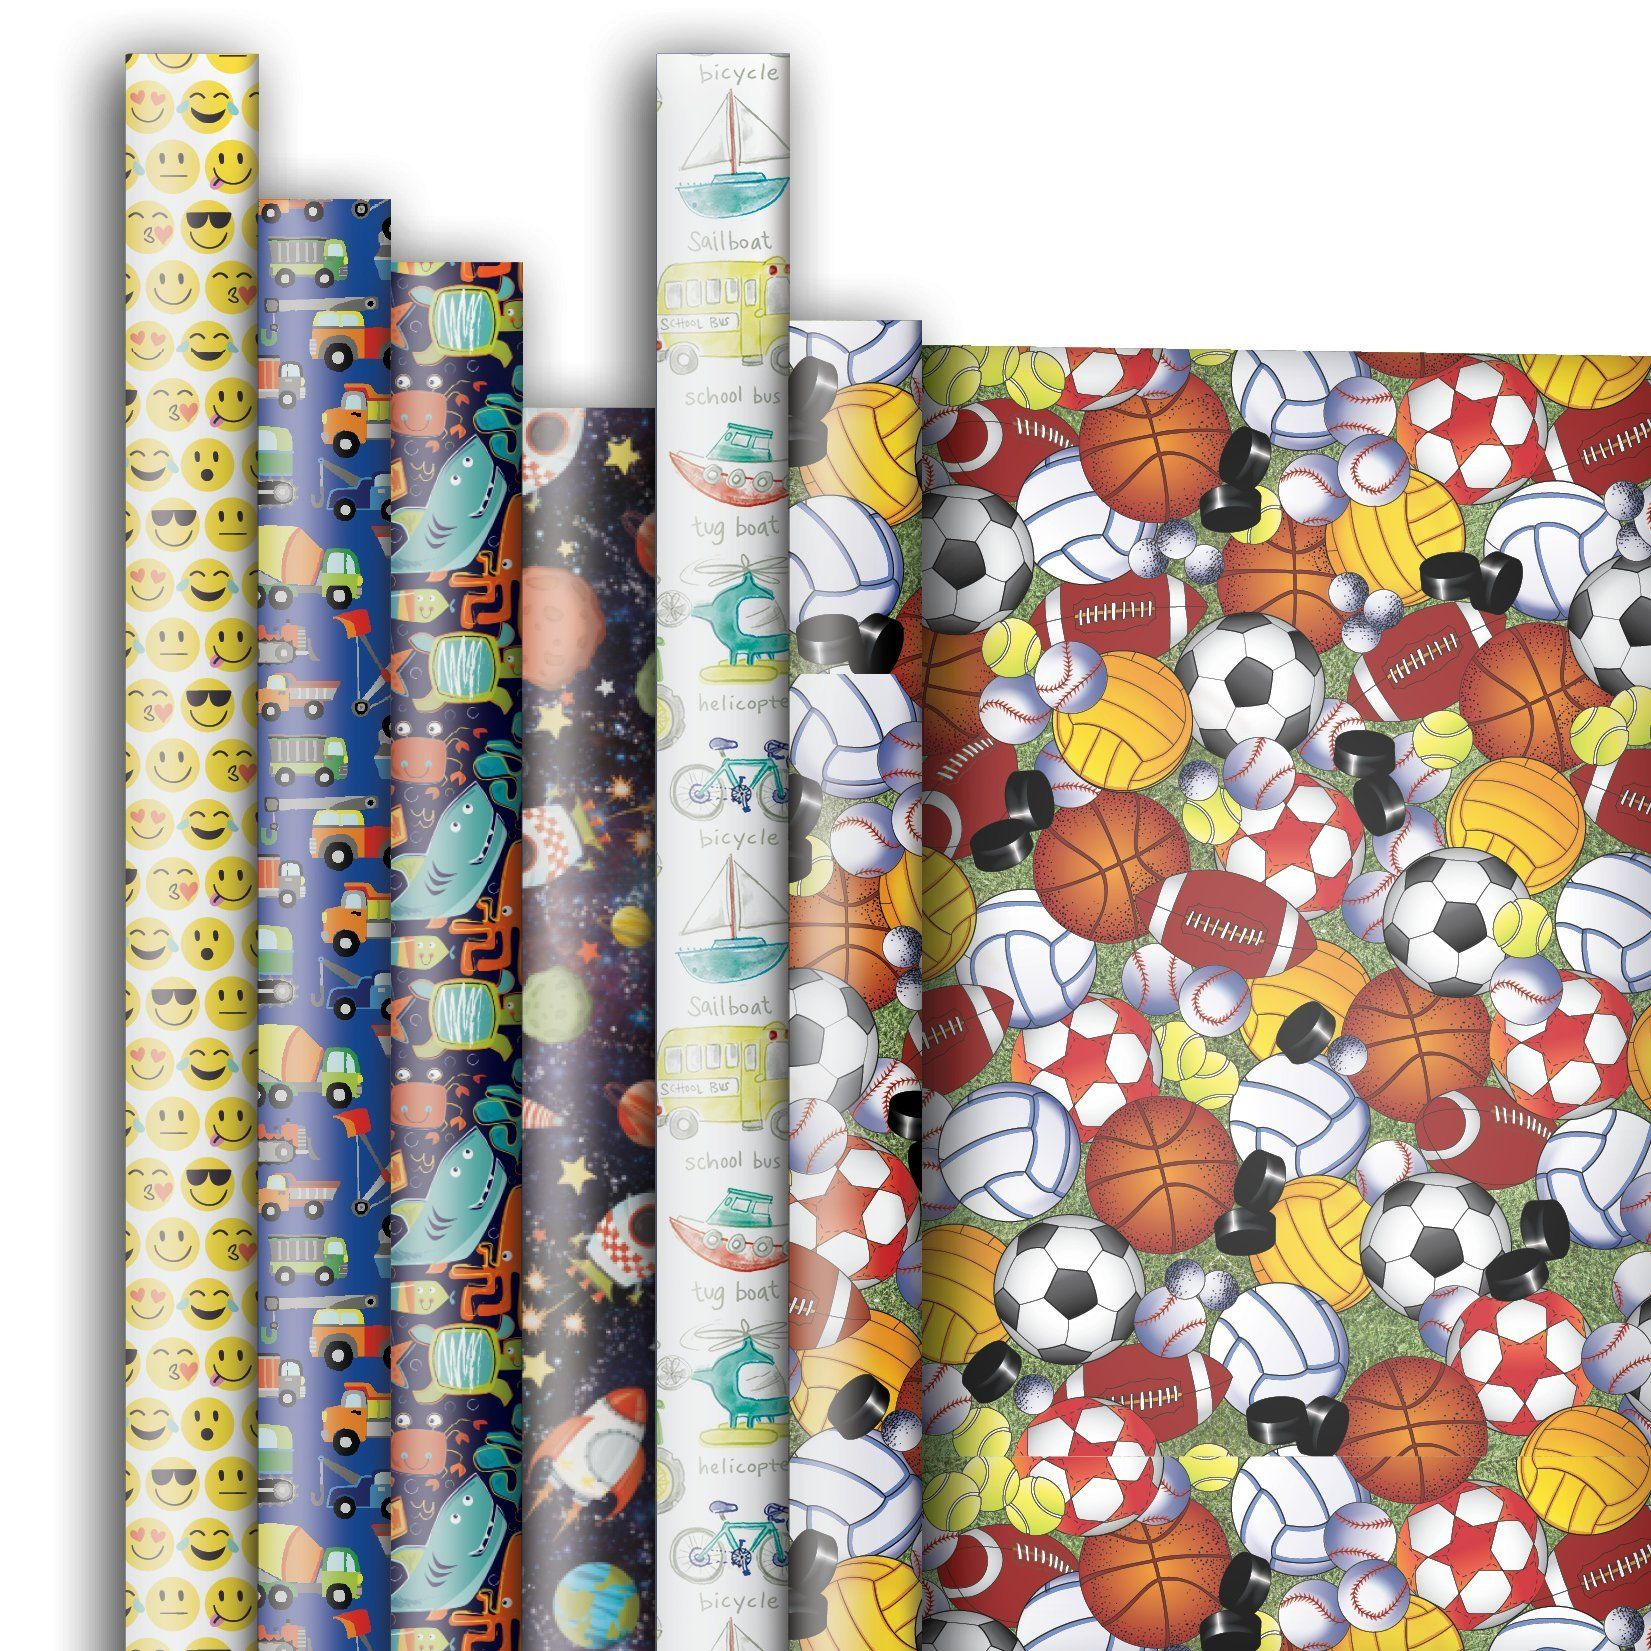 Kids Gift Wrap Wrapping Paper Assortment 6 Rolls 5ft X 30in Gift Wrapping Recycled Paper Gifts For Kids